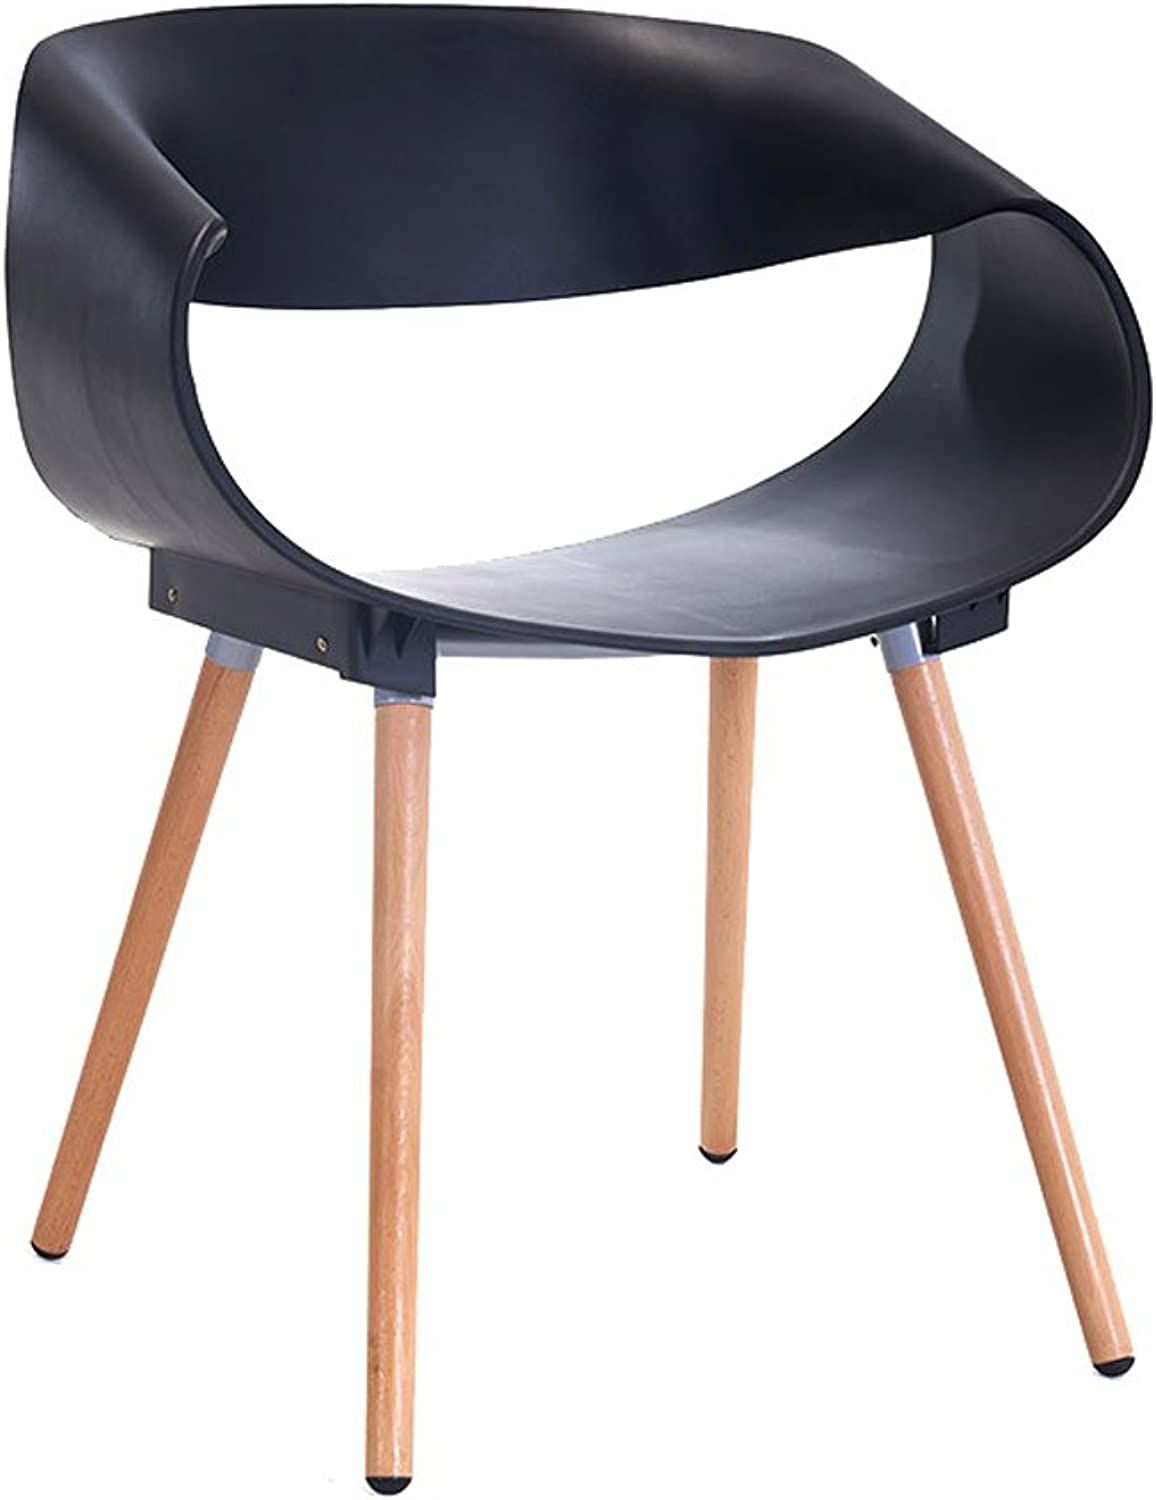 CQOZ Modern Minimalist Creative Chair Negotiate Tables and Chairs Solid Wood Plastic Backrest armrest Dining Chair Sofa Stool (color   Black)